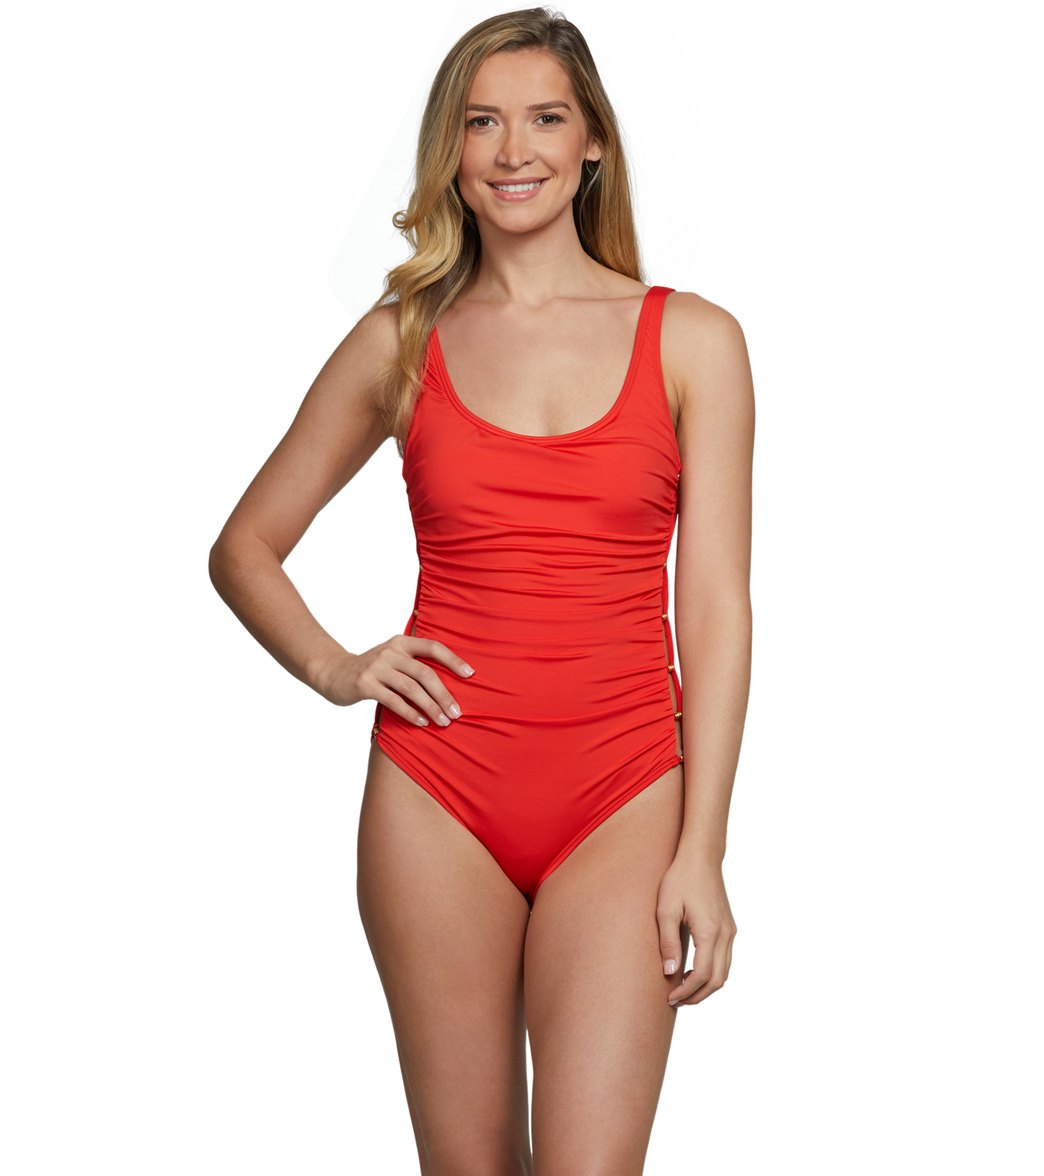 c0ab03d7389ca Carmen Marc Valvo Poolside Scoop Neck One Piece Swimsuit at SwimOutlet.com  - Free Shipping